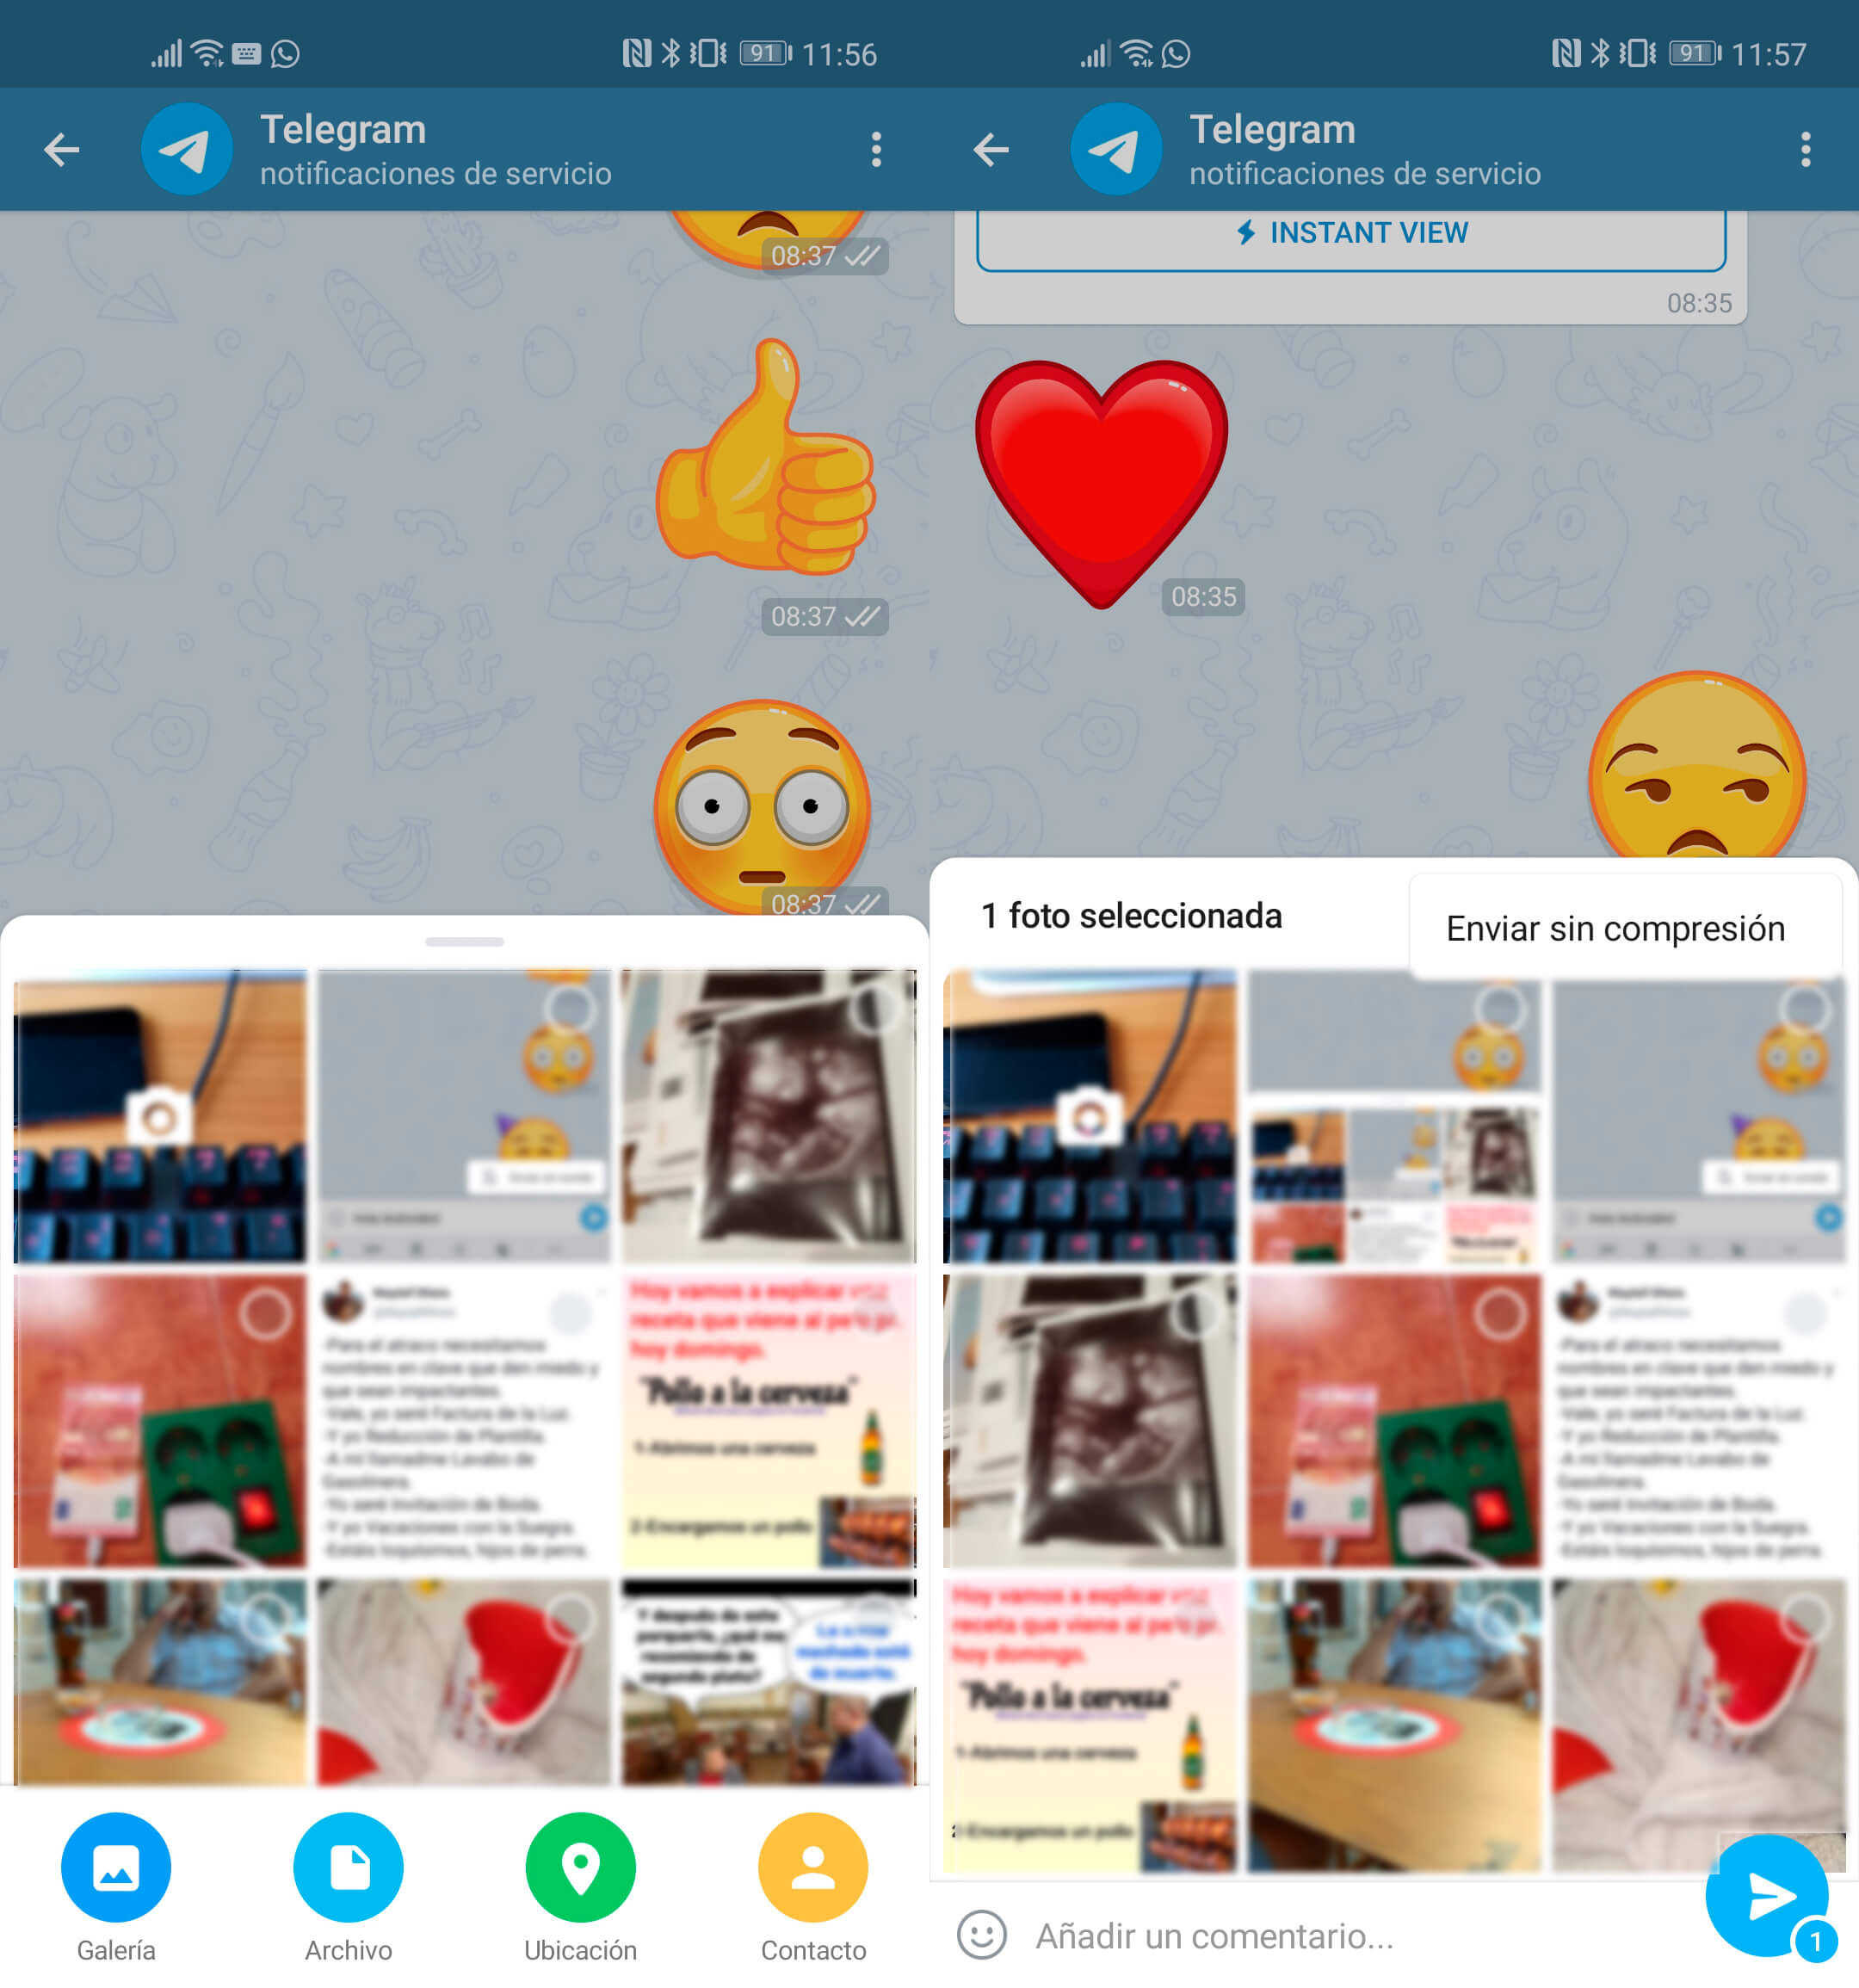 silent chats, animated emojis, slow chat ... 2